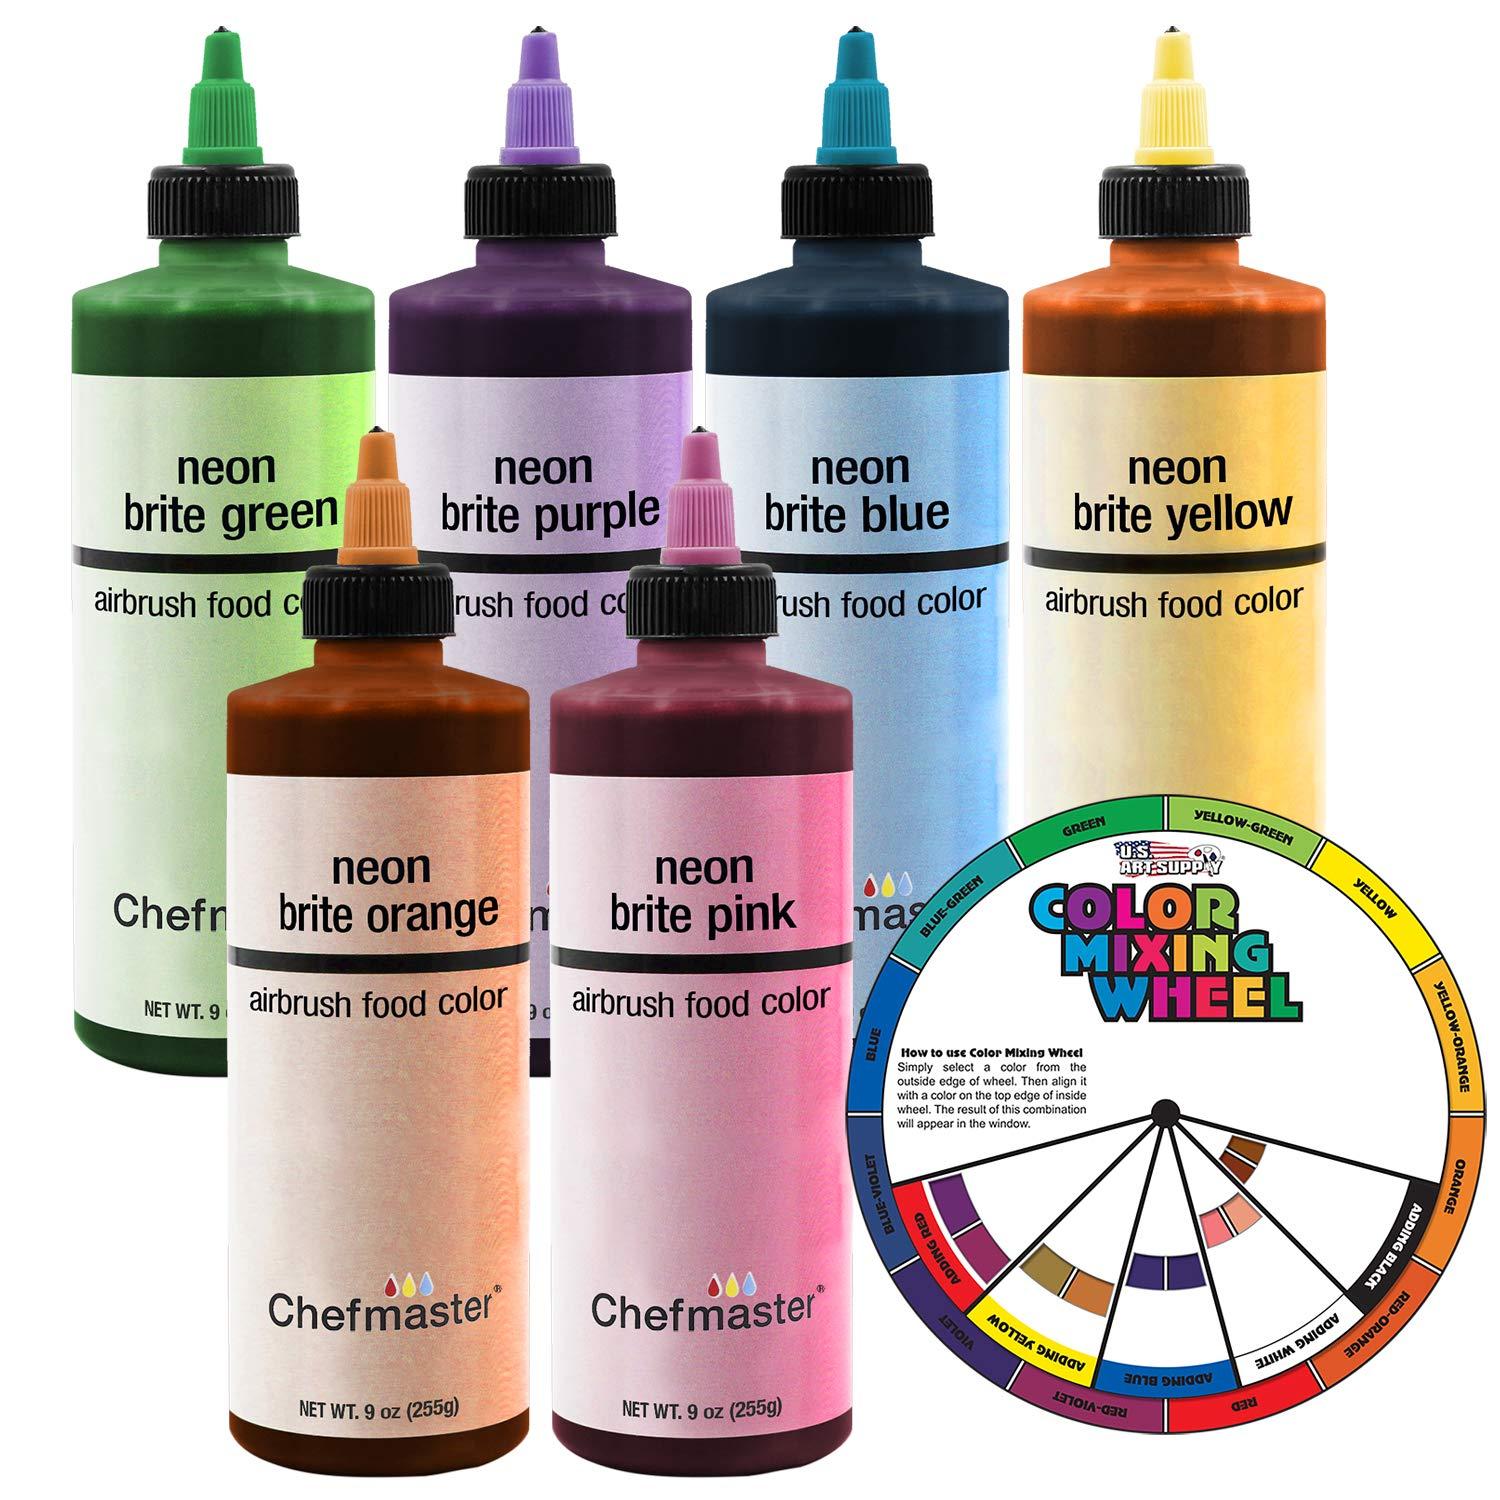 Chefmaster by U.S. Cake Supply 9-Ounce Neon Airbrush Cake Food Colors 6 Bottle Kit with Color Mixing Wheel by U.S. Cake Supply (Image #1)